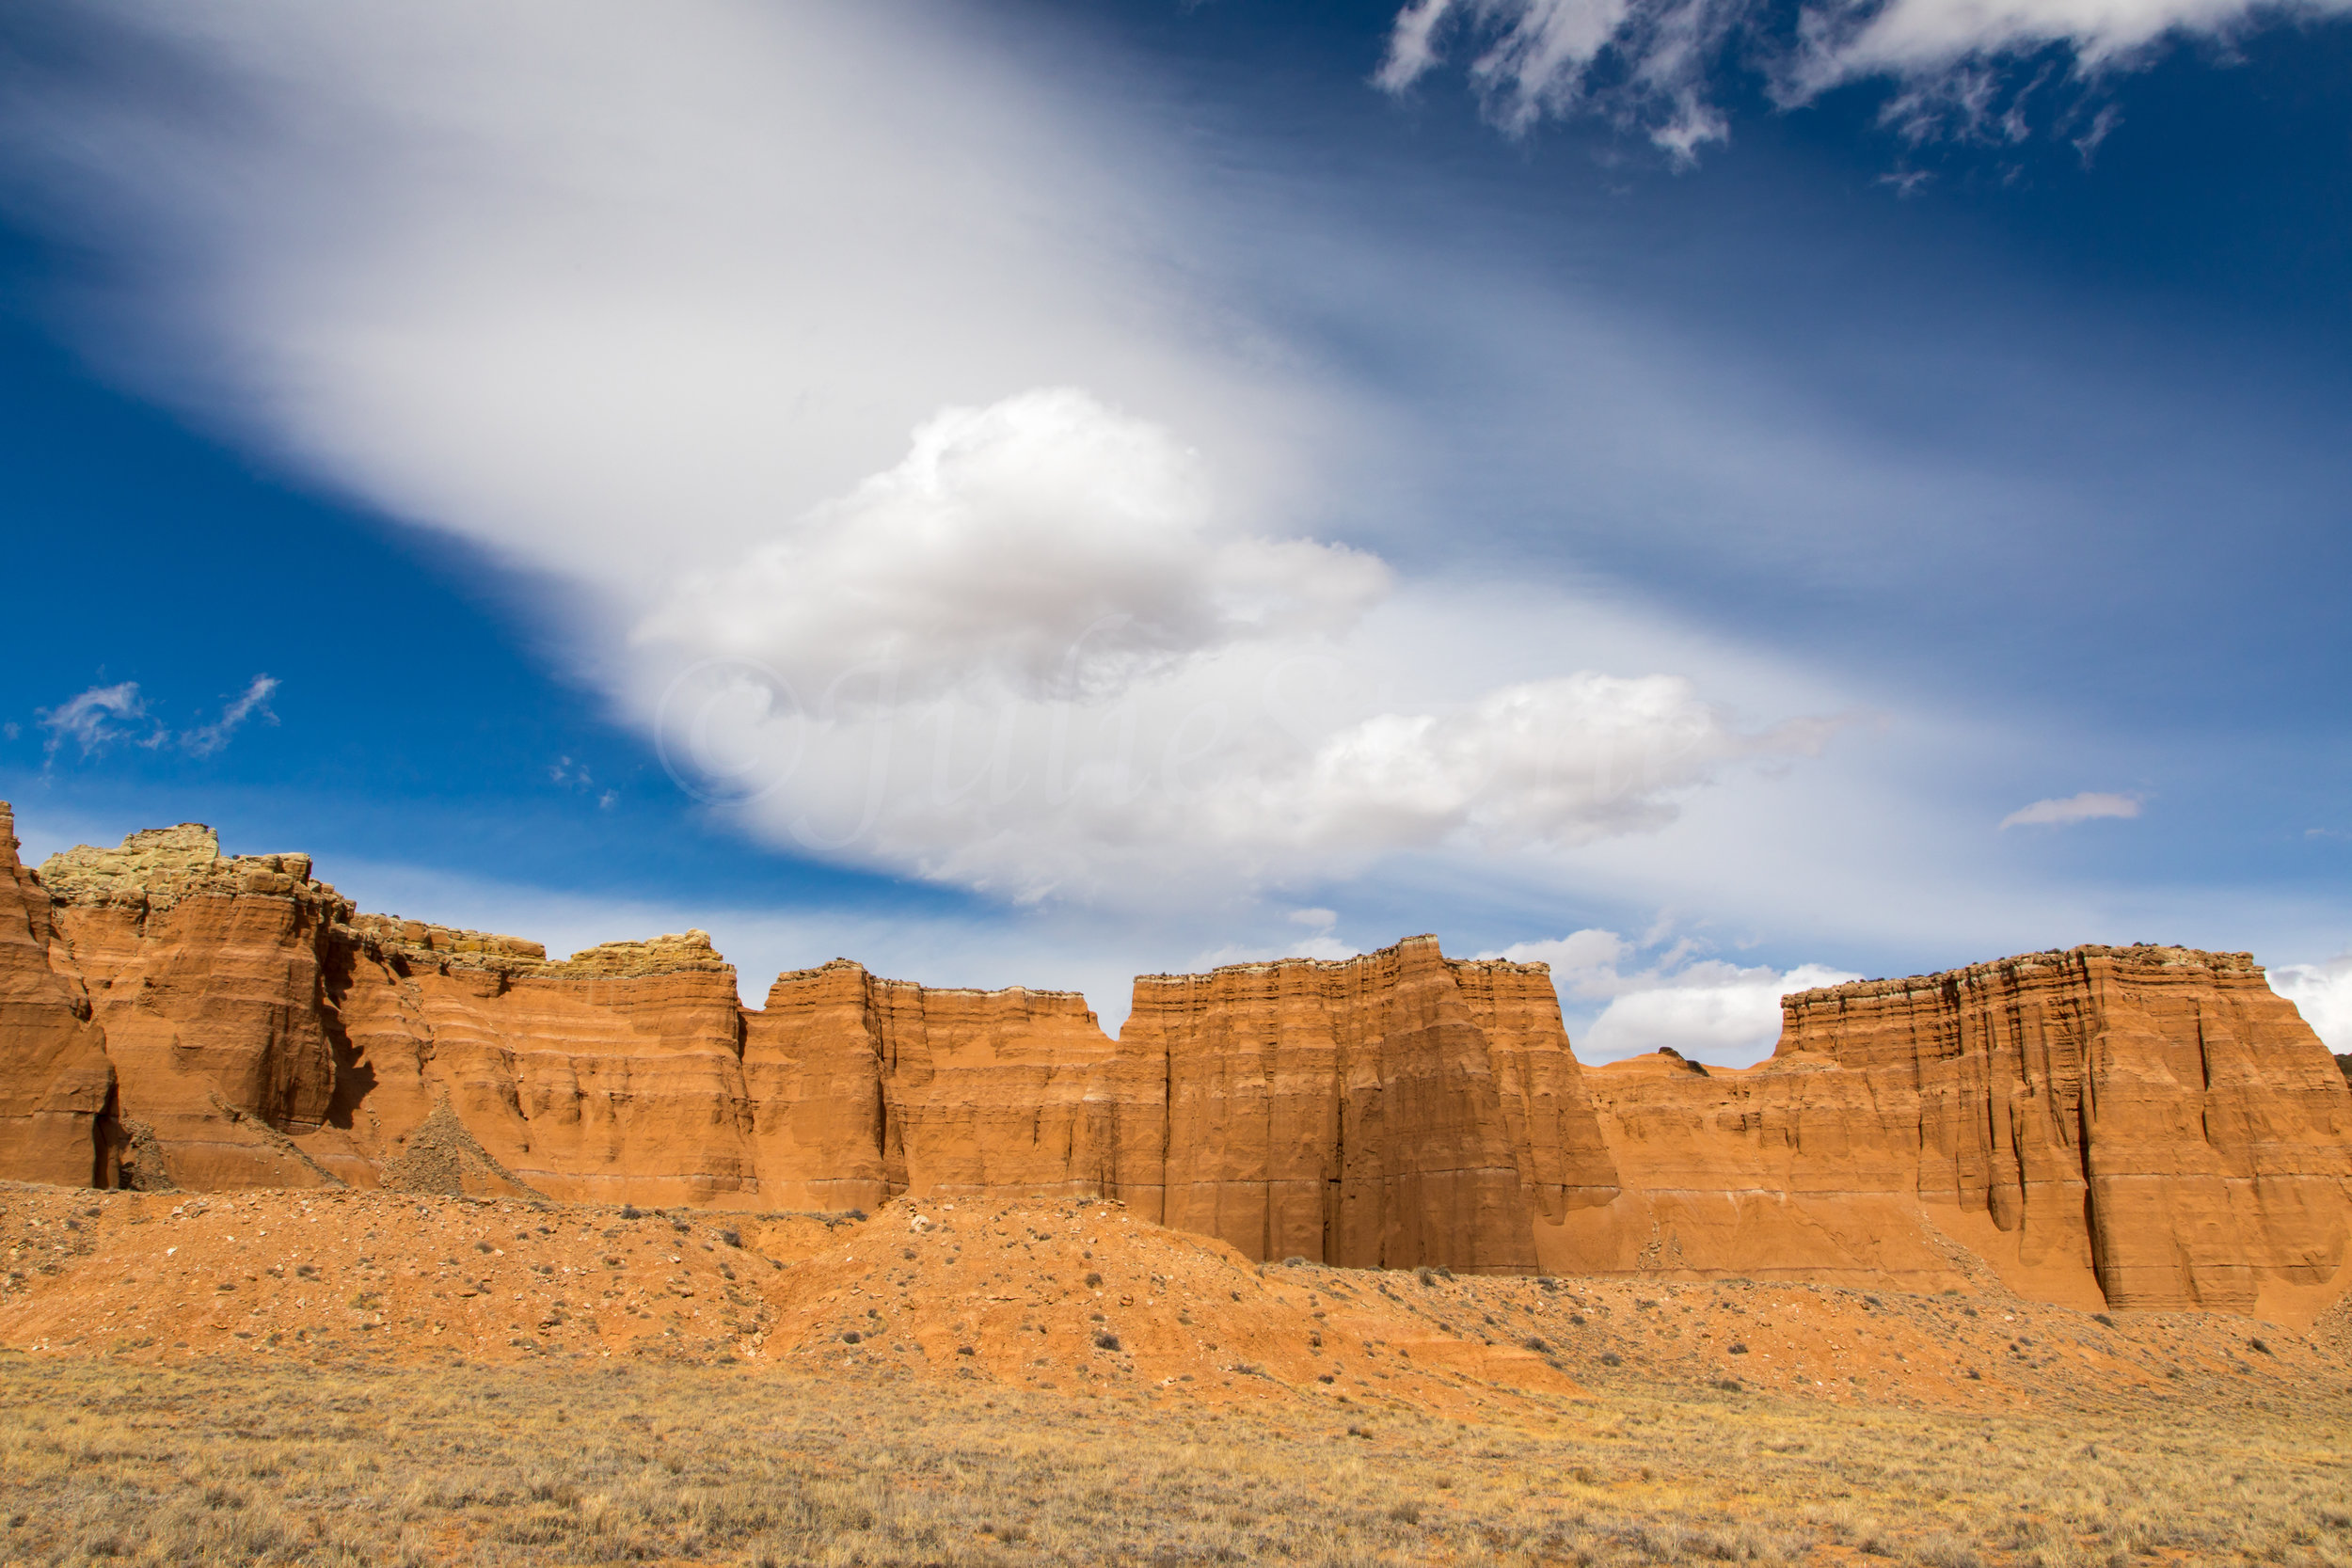 Capitol Reef National Park, Image # 2015